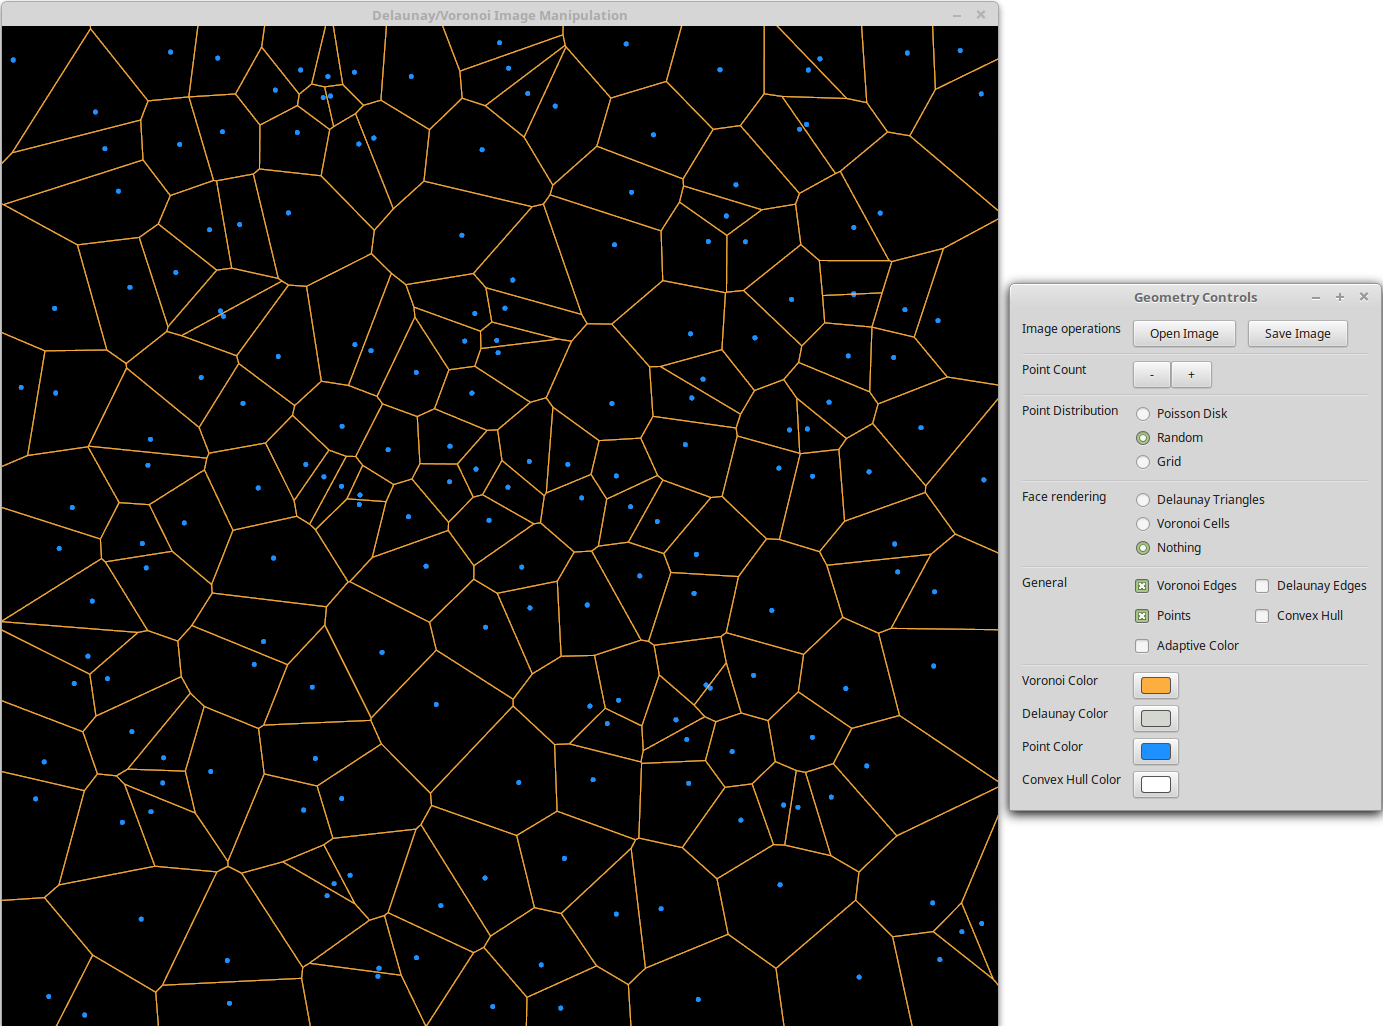 Just voronoi